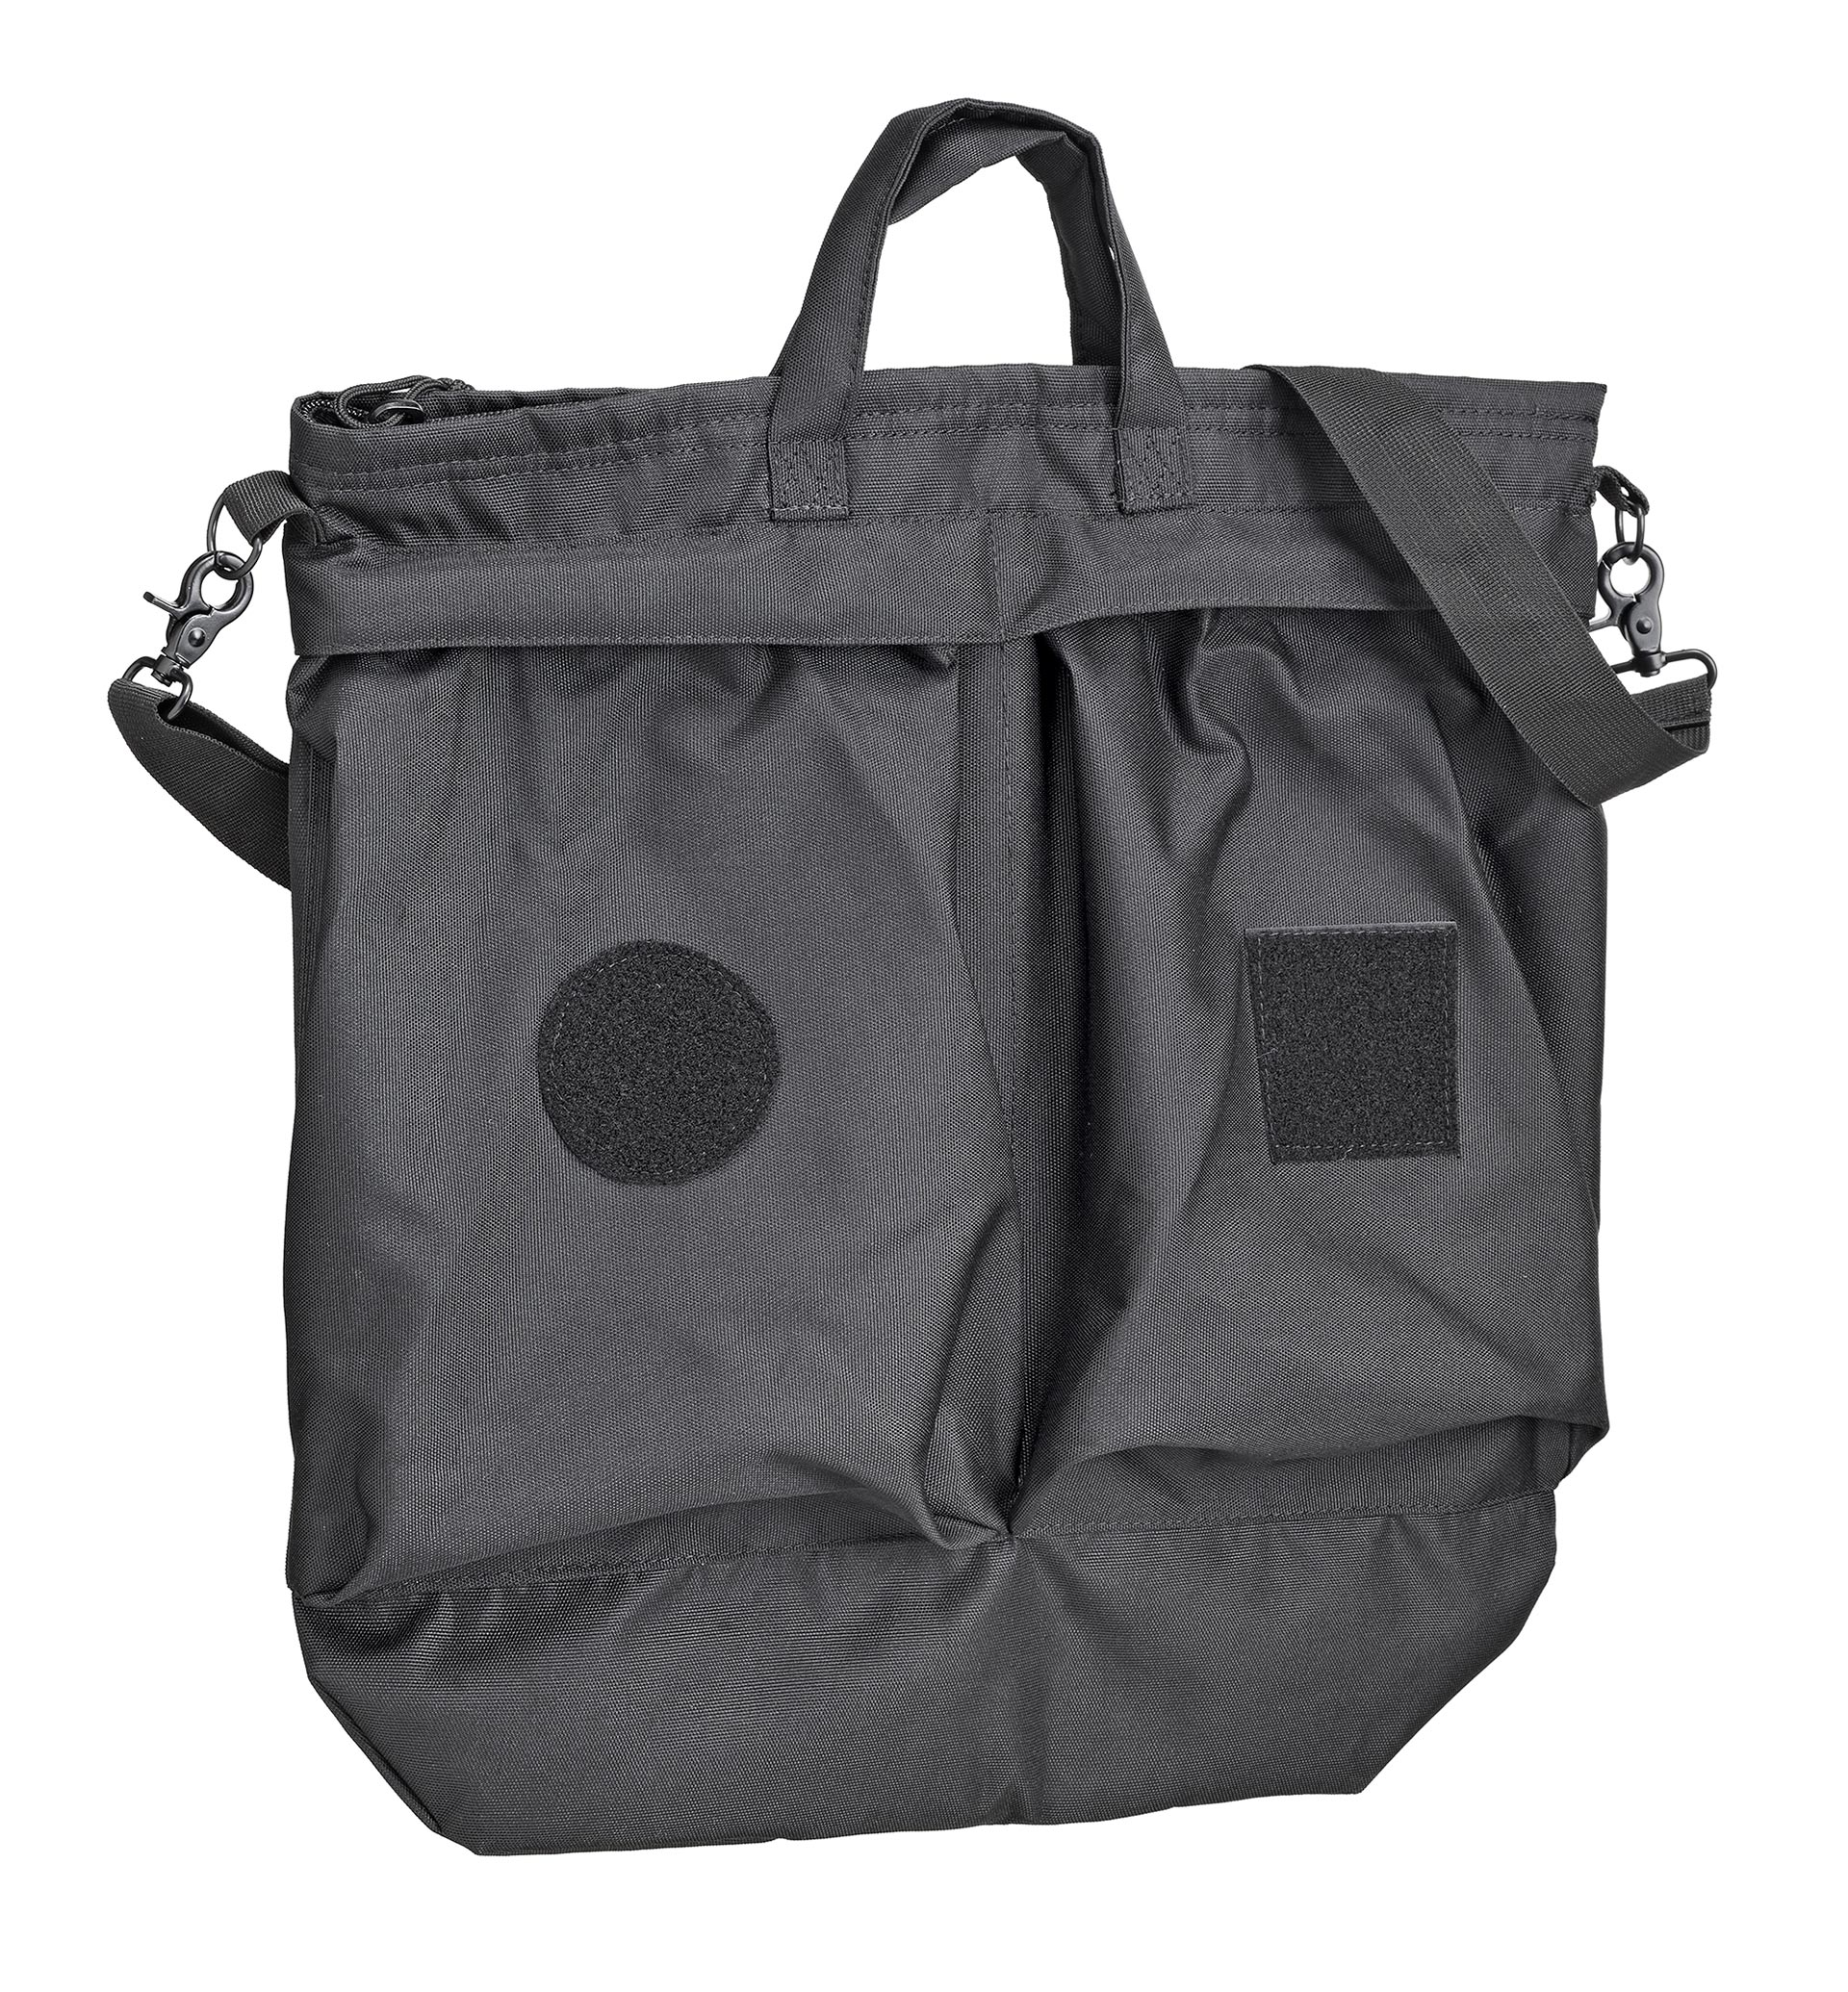 DEFCON 5 HELMET BAG